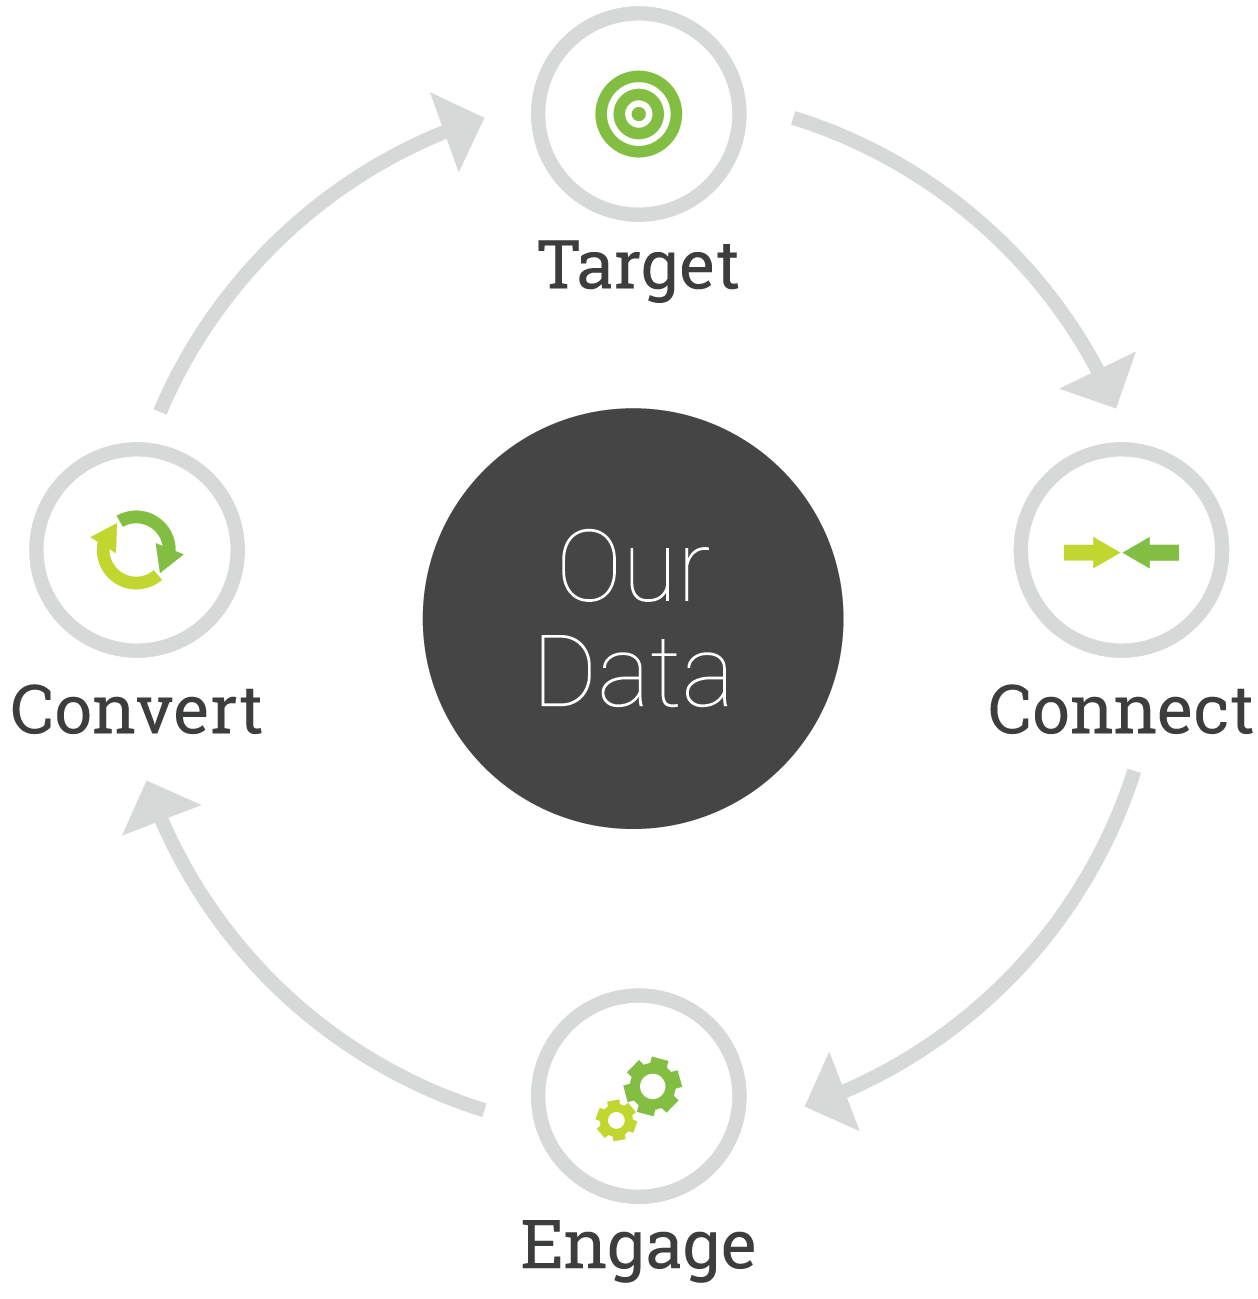 Target, connect, engage, and convert through Data Services, Media Services, and Marketing Services